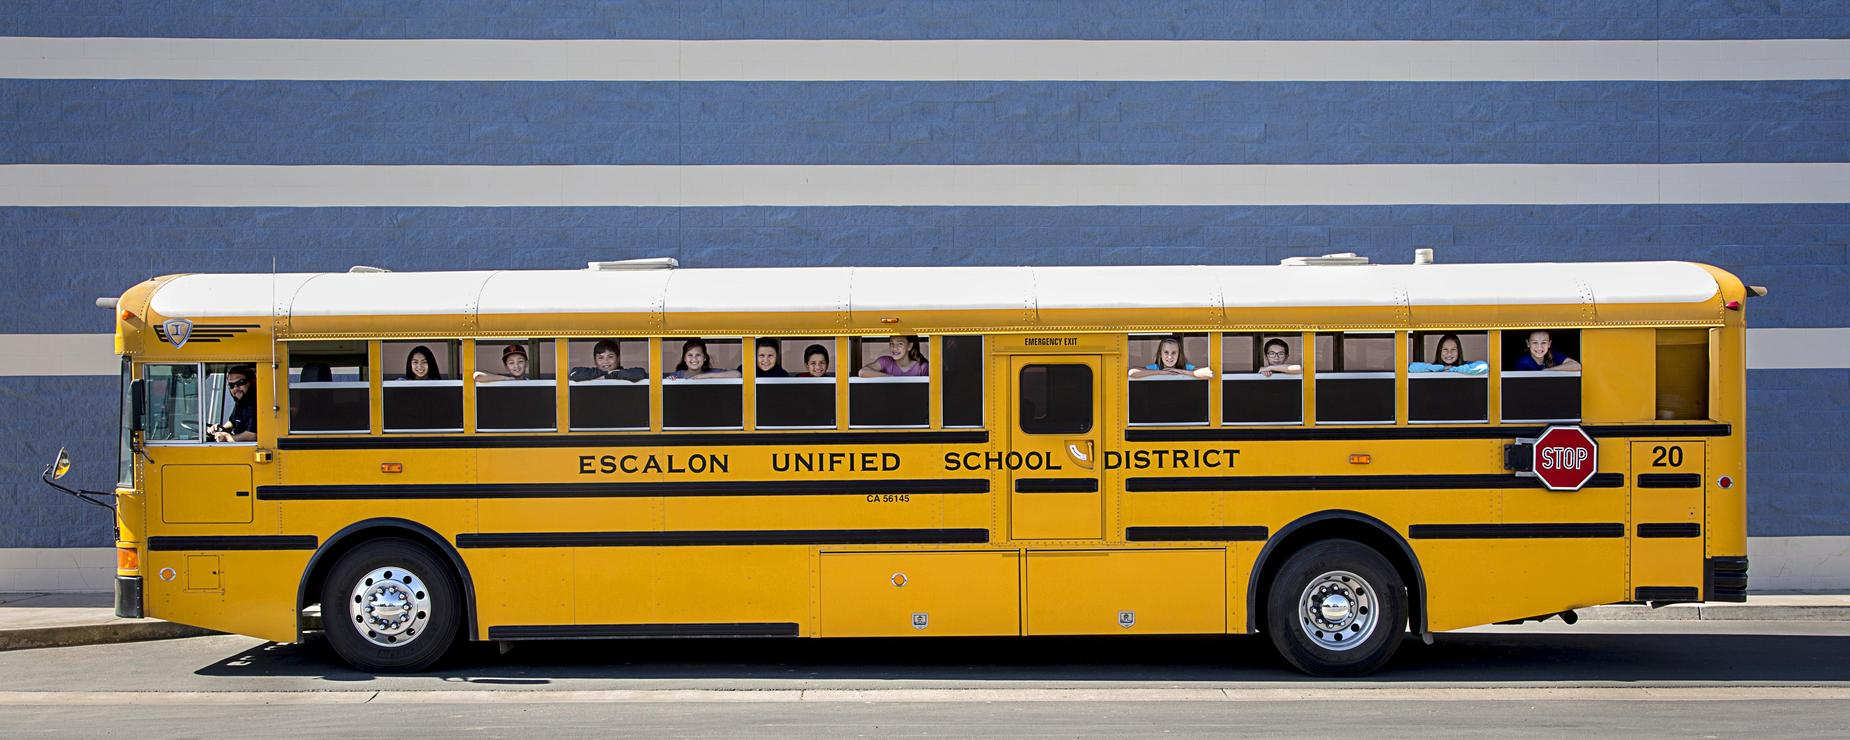 Escalon bus with driver and students looking out windows.